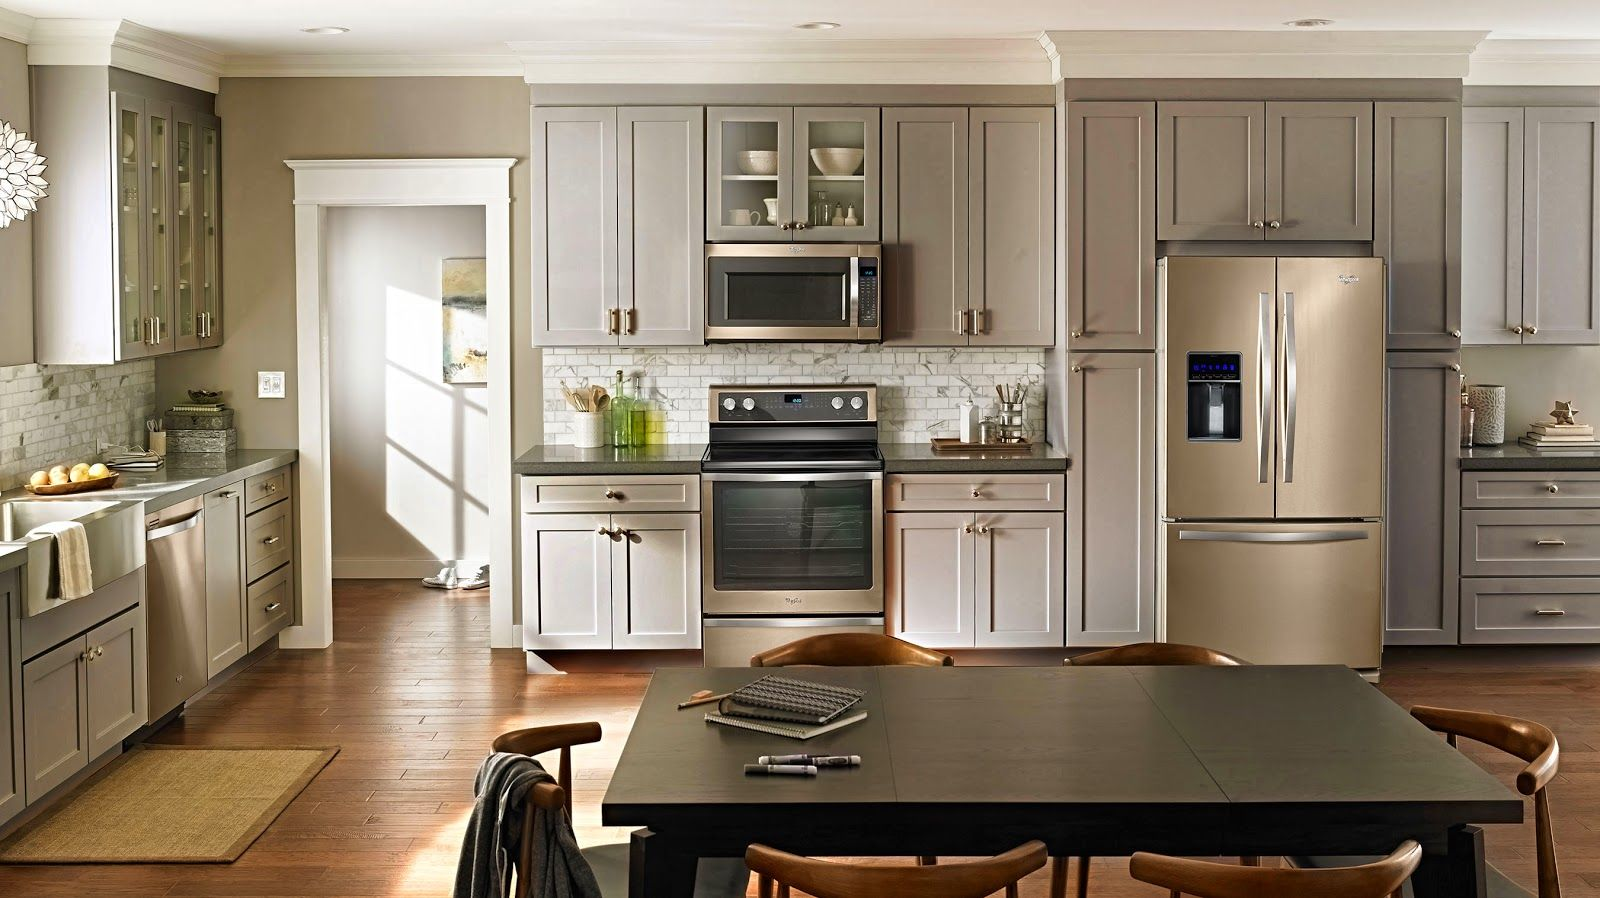 5 New Home Trends For 2015 Home Trends Best Appliances Kitchen Models